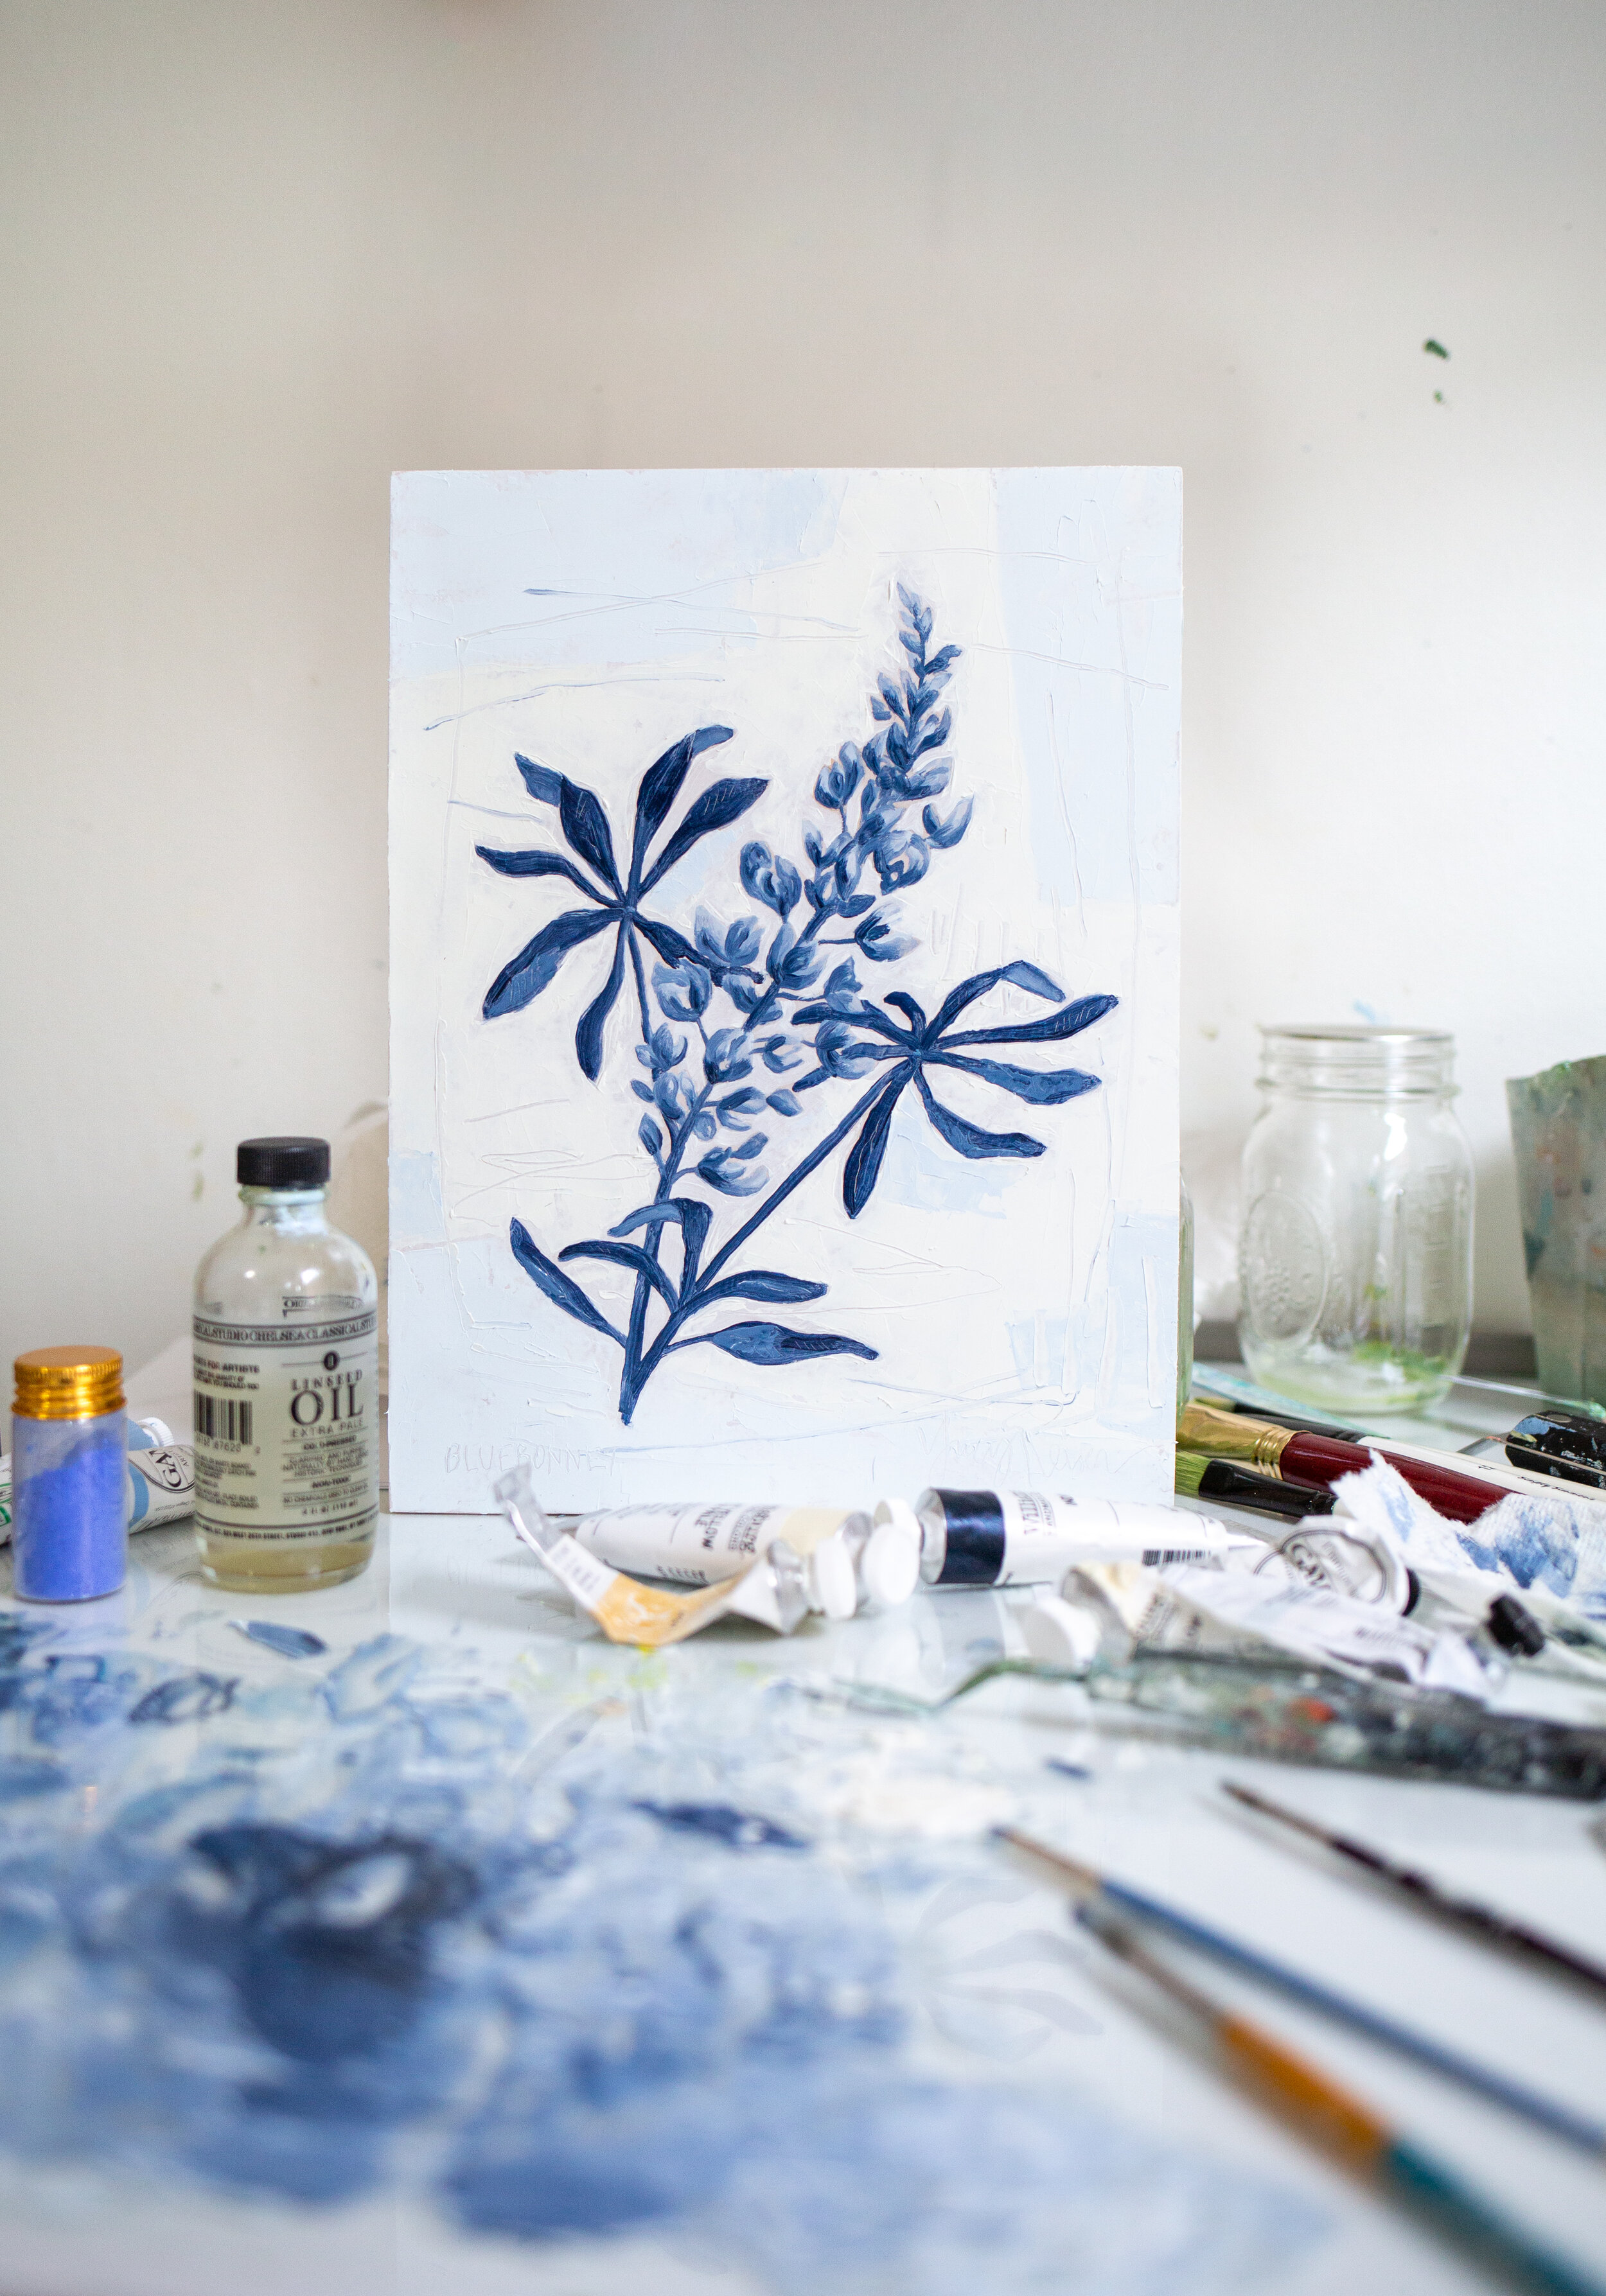 In the studio with oil paints and a Bluebonnet.